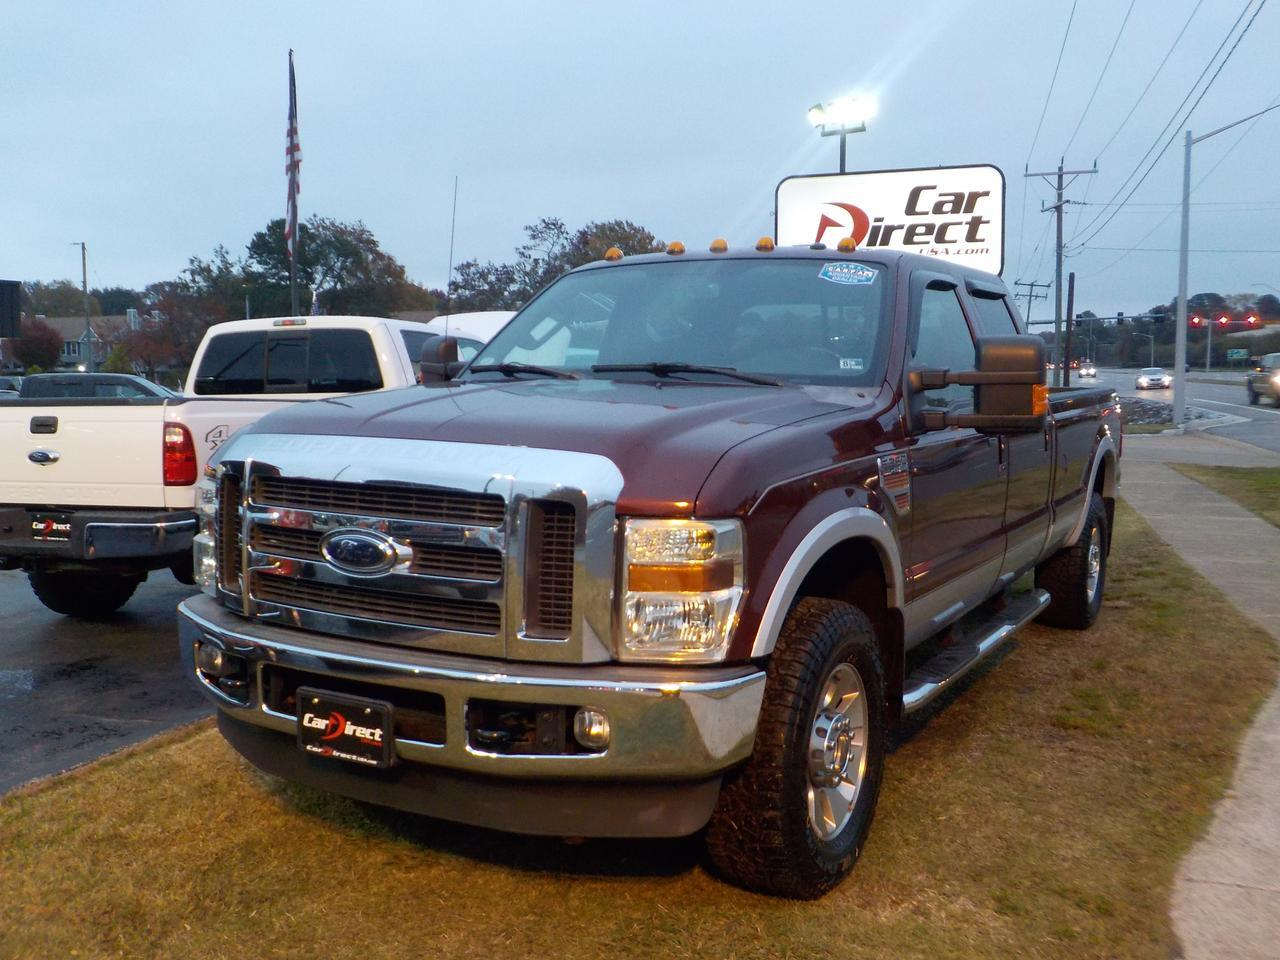 2010 FORD F-250 LARIAT SUPER DUTY 4X4, 6.4L POWERSTROKE DIESEL, LONG BED, LEATHER SEATS, REMOVEABLE BED COVER!!!